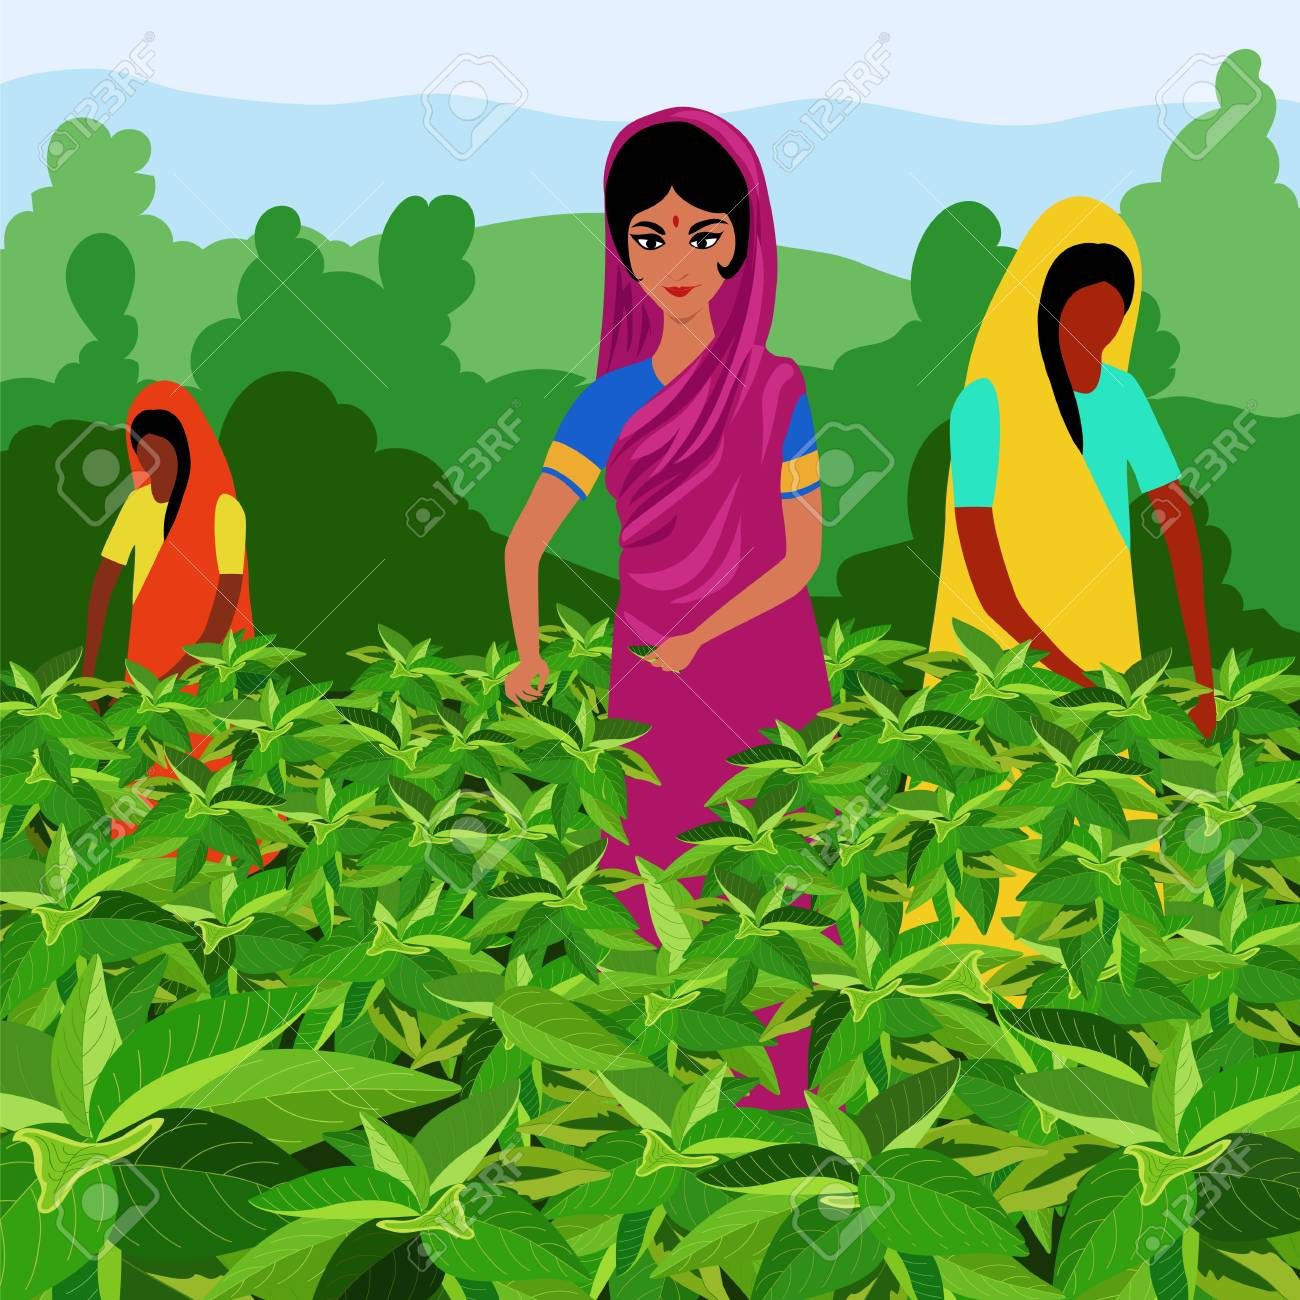 Indian Women Tea Pickers Royalty Free Cliparts Vectors And Stock Illustration Image 99701554